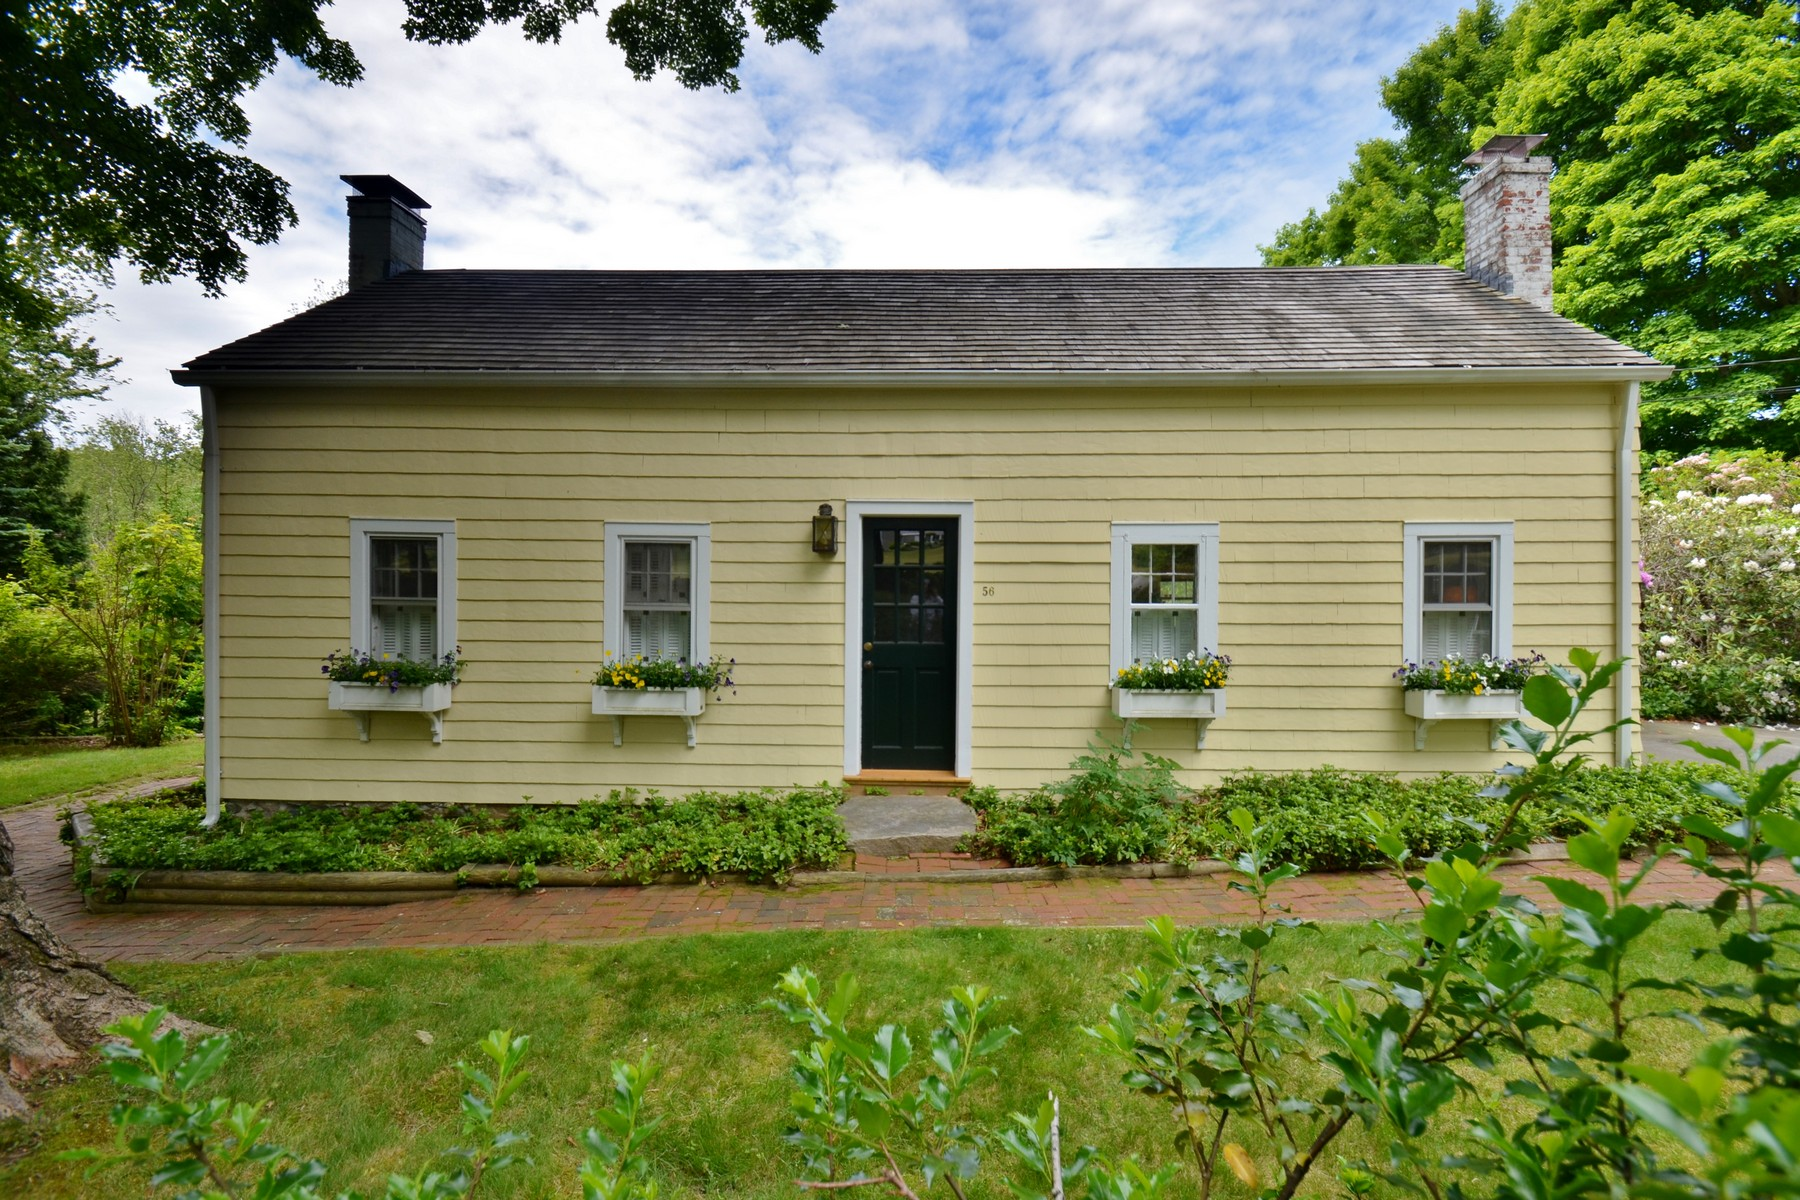 Single Family Home for Sale at Cape Abounds with Character & Charm 56 Sill Lane Old Lyme, Connecticut 06371 United States